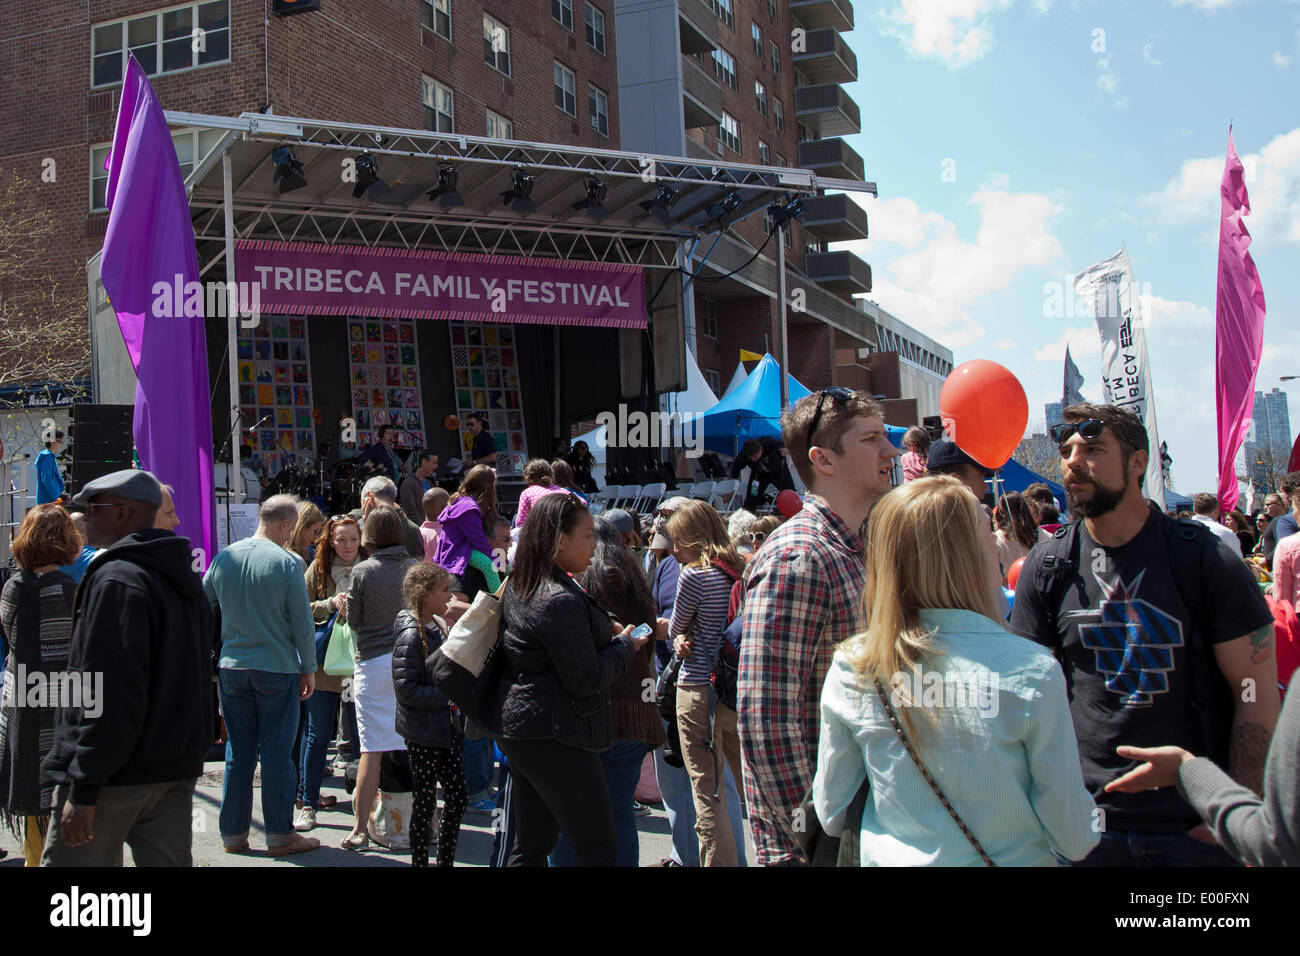 New York, USA. 27. April 2014. Straßenszene auf dem TriBeCa Familie Festival im Rahmen des TriBeCa Film Festival, New York City; Kredit-27. April 2014: Louis Champion/Alamy Live-Nachrichten Stockbild